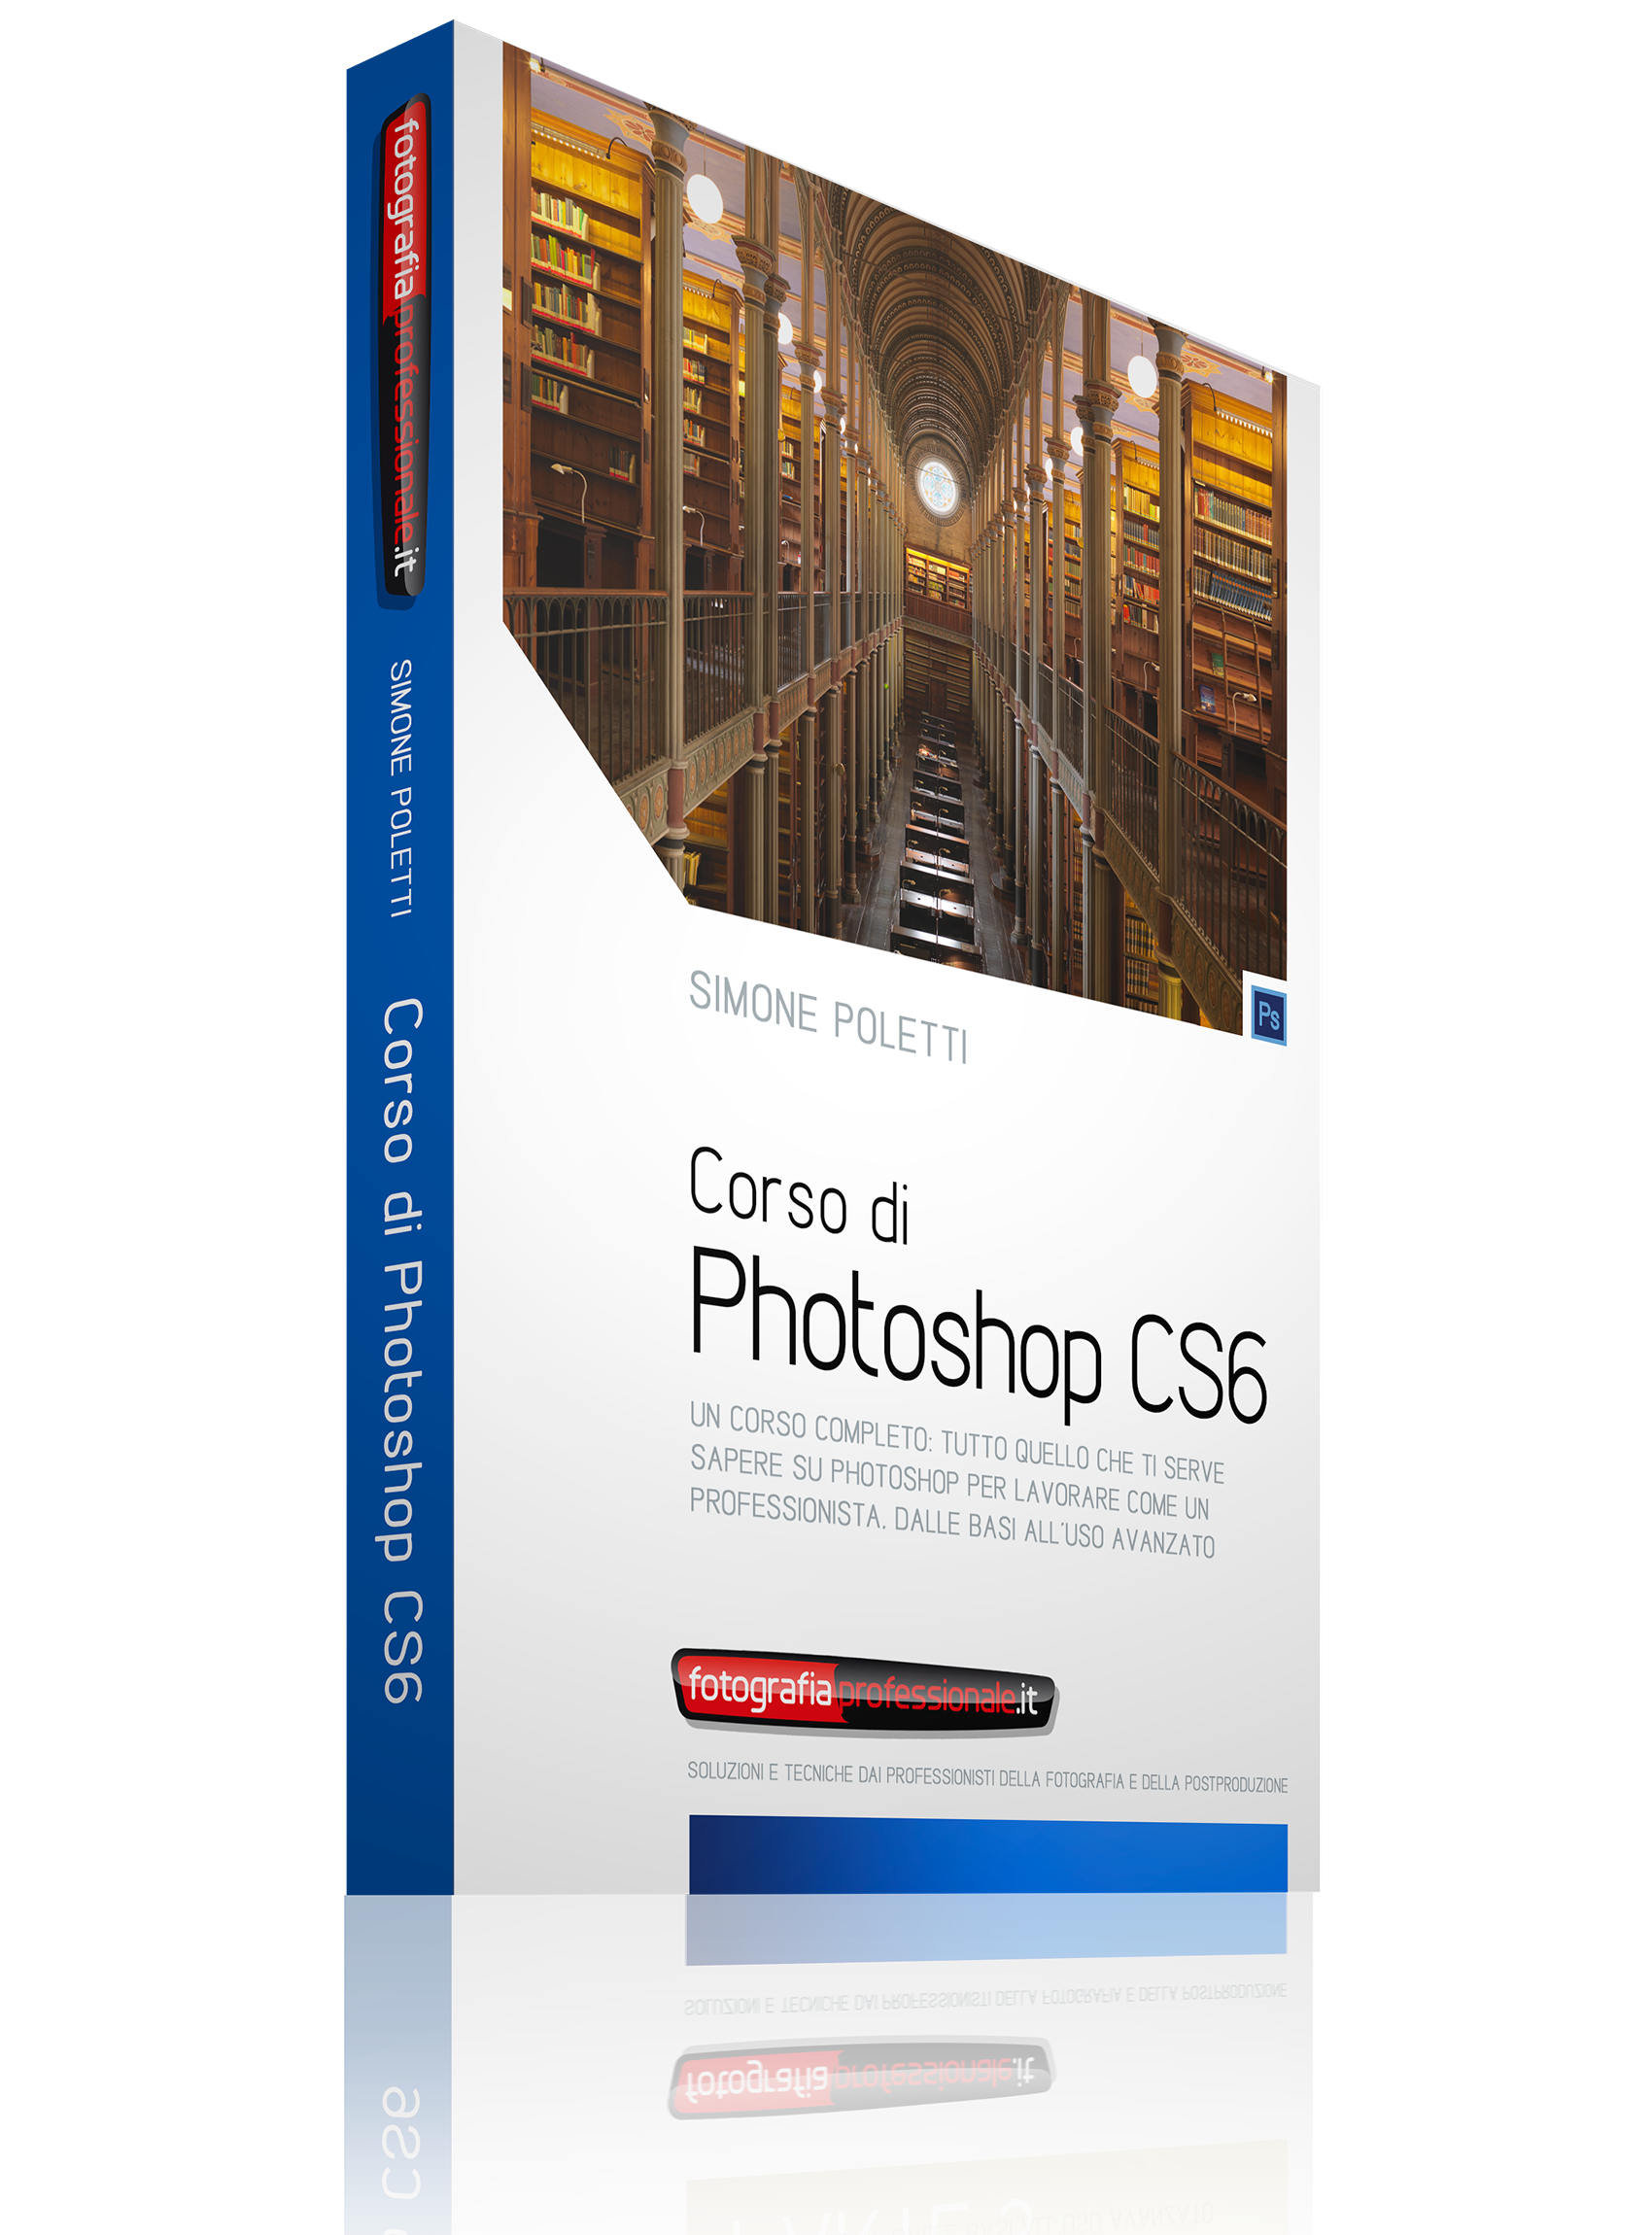 Corso di Photoshop CS6 COMPLETO (Parti 1, 2 e 3)